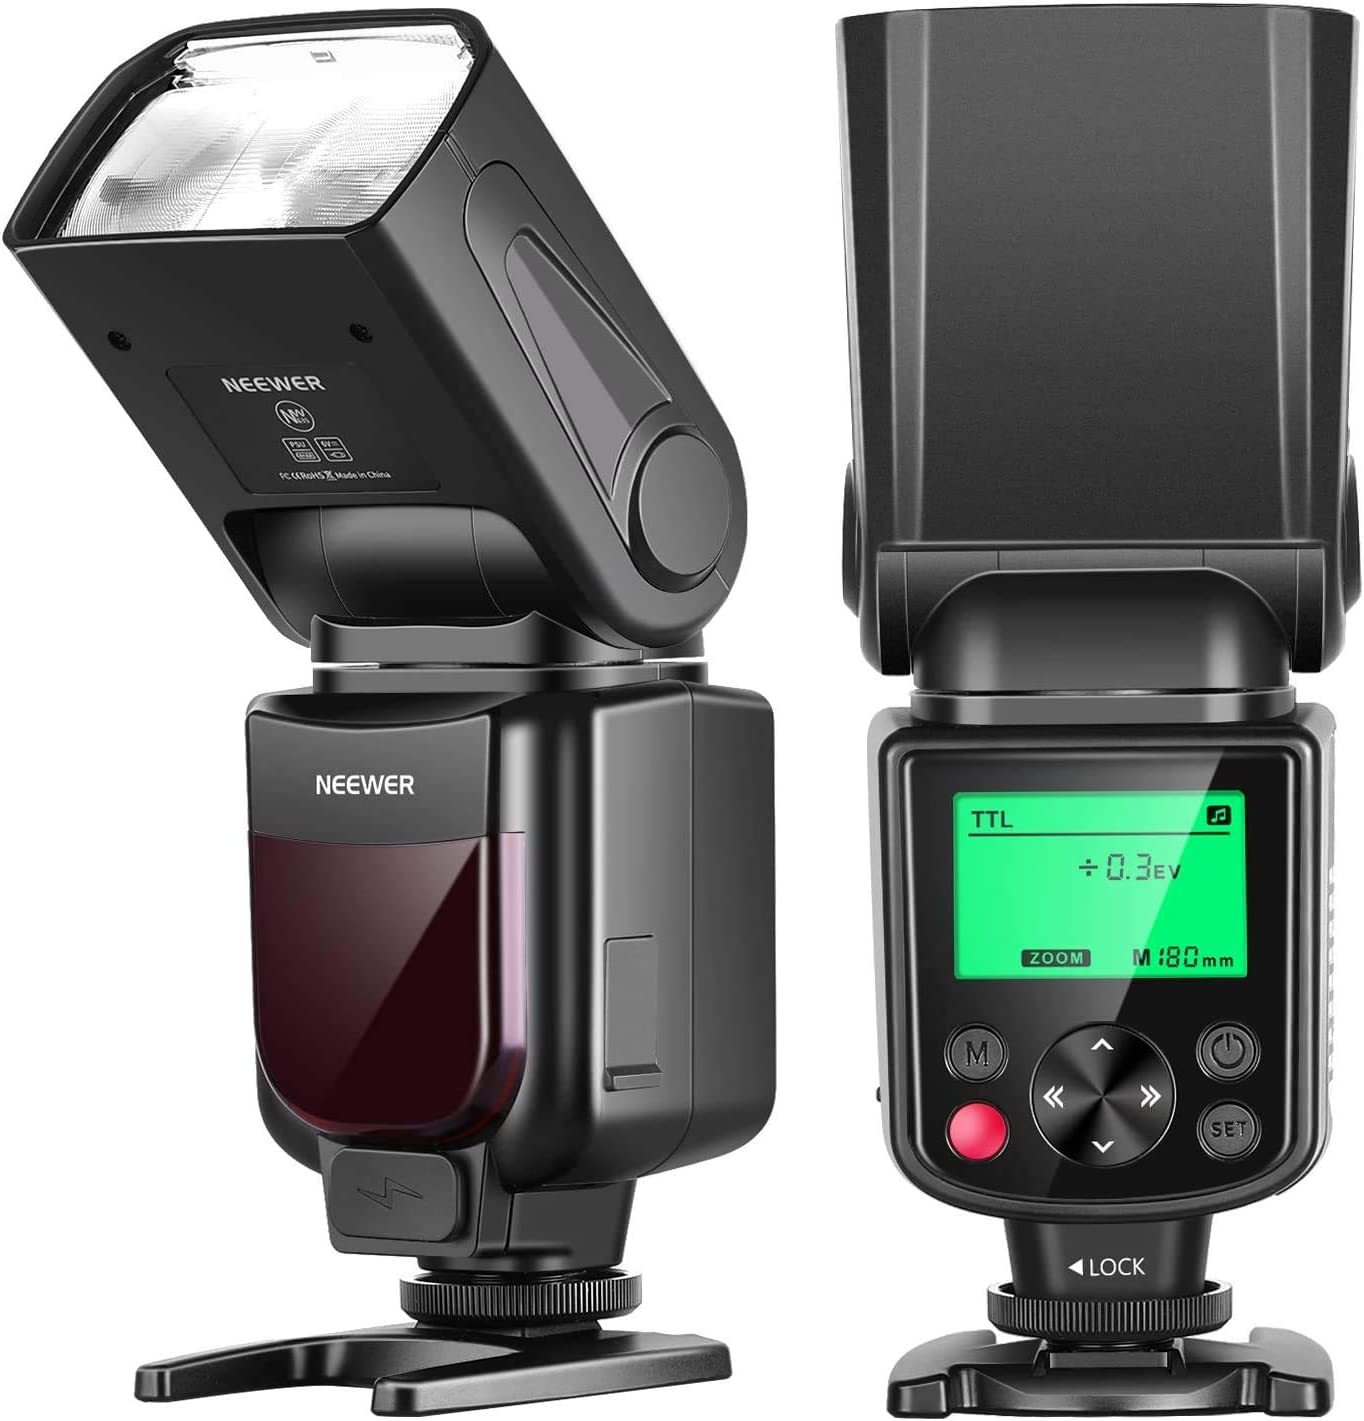 Neewer NW635 GN58 TTL Flash Speedlite with LCD Display and Soft Diffuser Compatible with Sony MI Hot Shoe Cameras A9II A9 A7RIV/III A7III A7SIII A6600 A6500 A6400 A6300 A6000 A99II A77II RX10IV